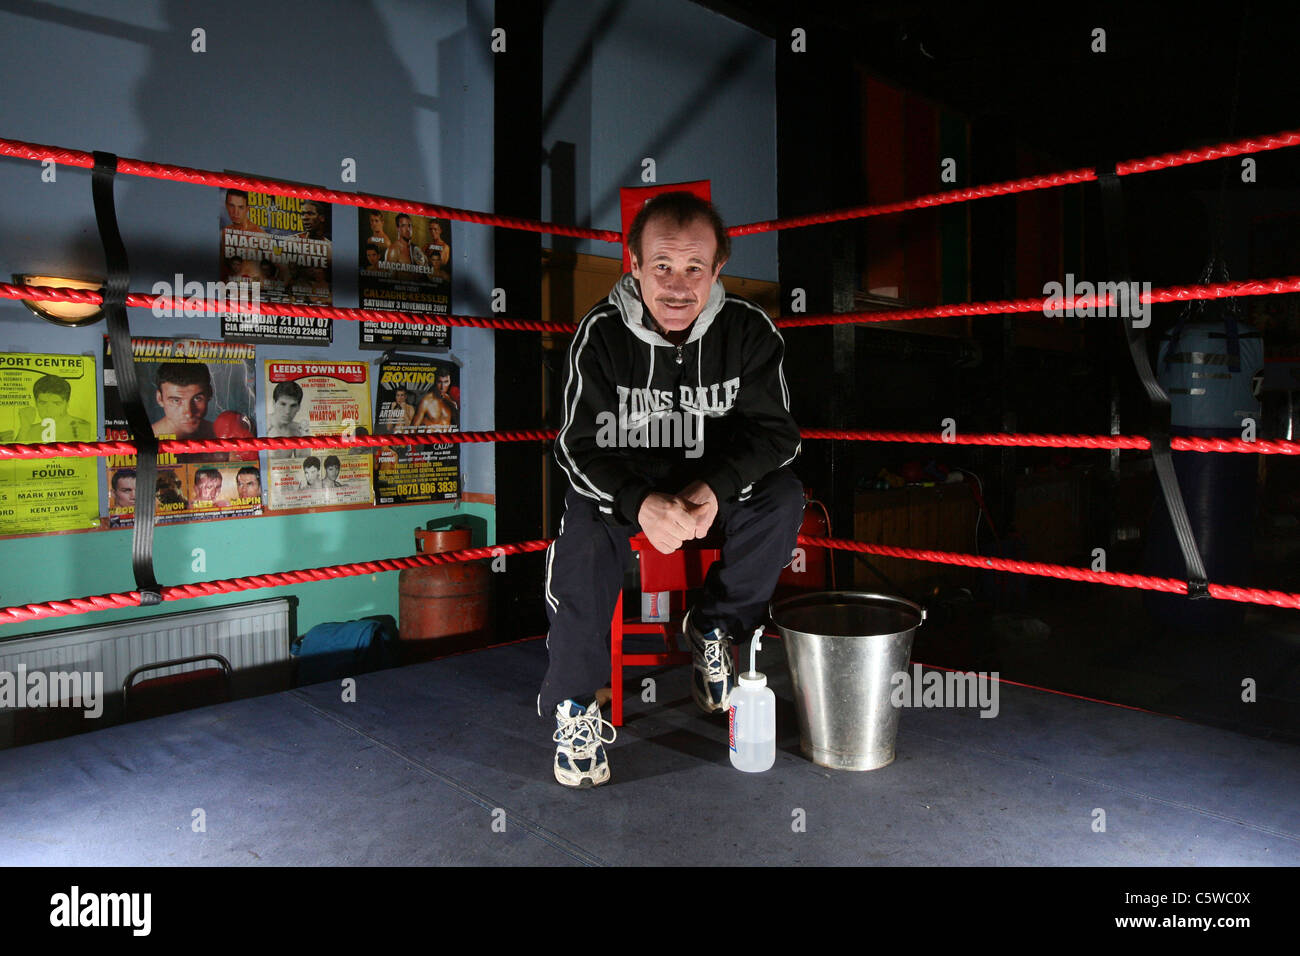 Enzo Calzaghe -  father and former trainer of retired world champion Joe Calzaghe. - Stock Image